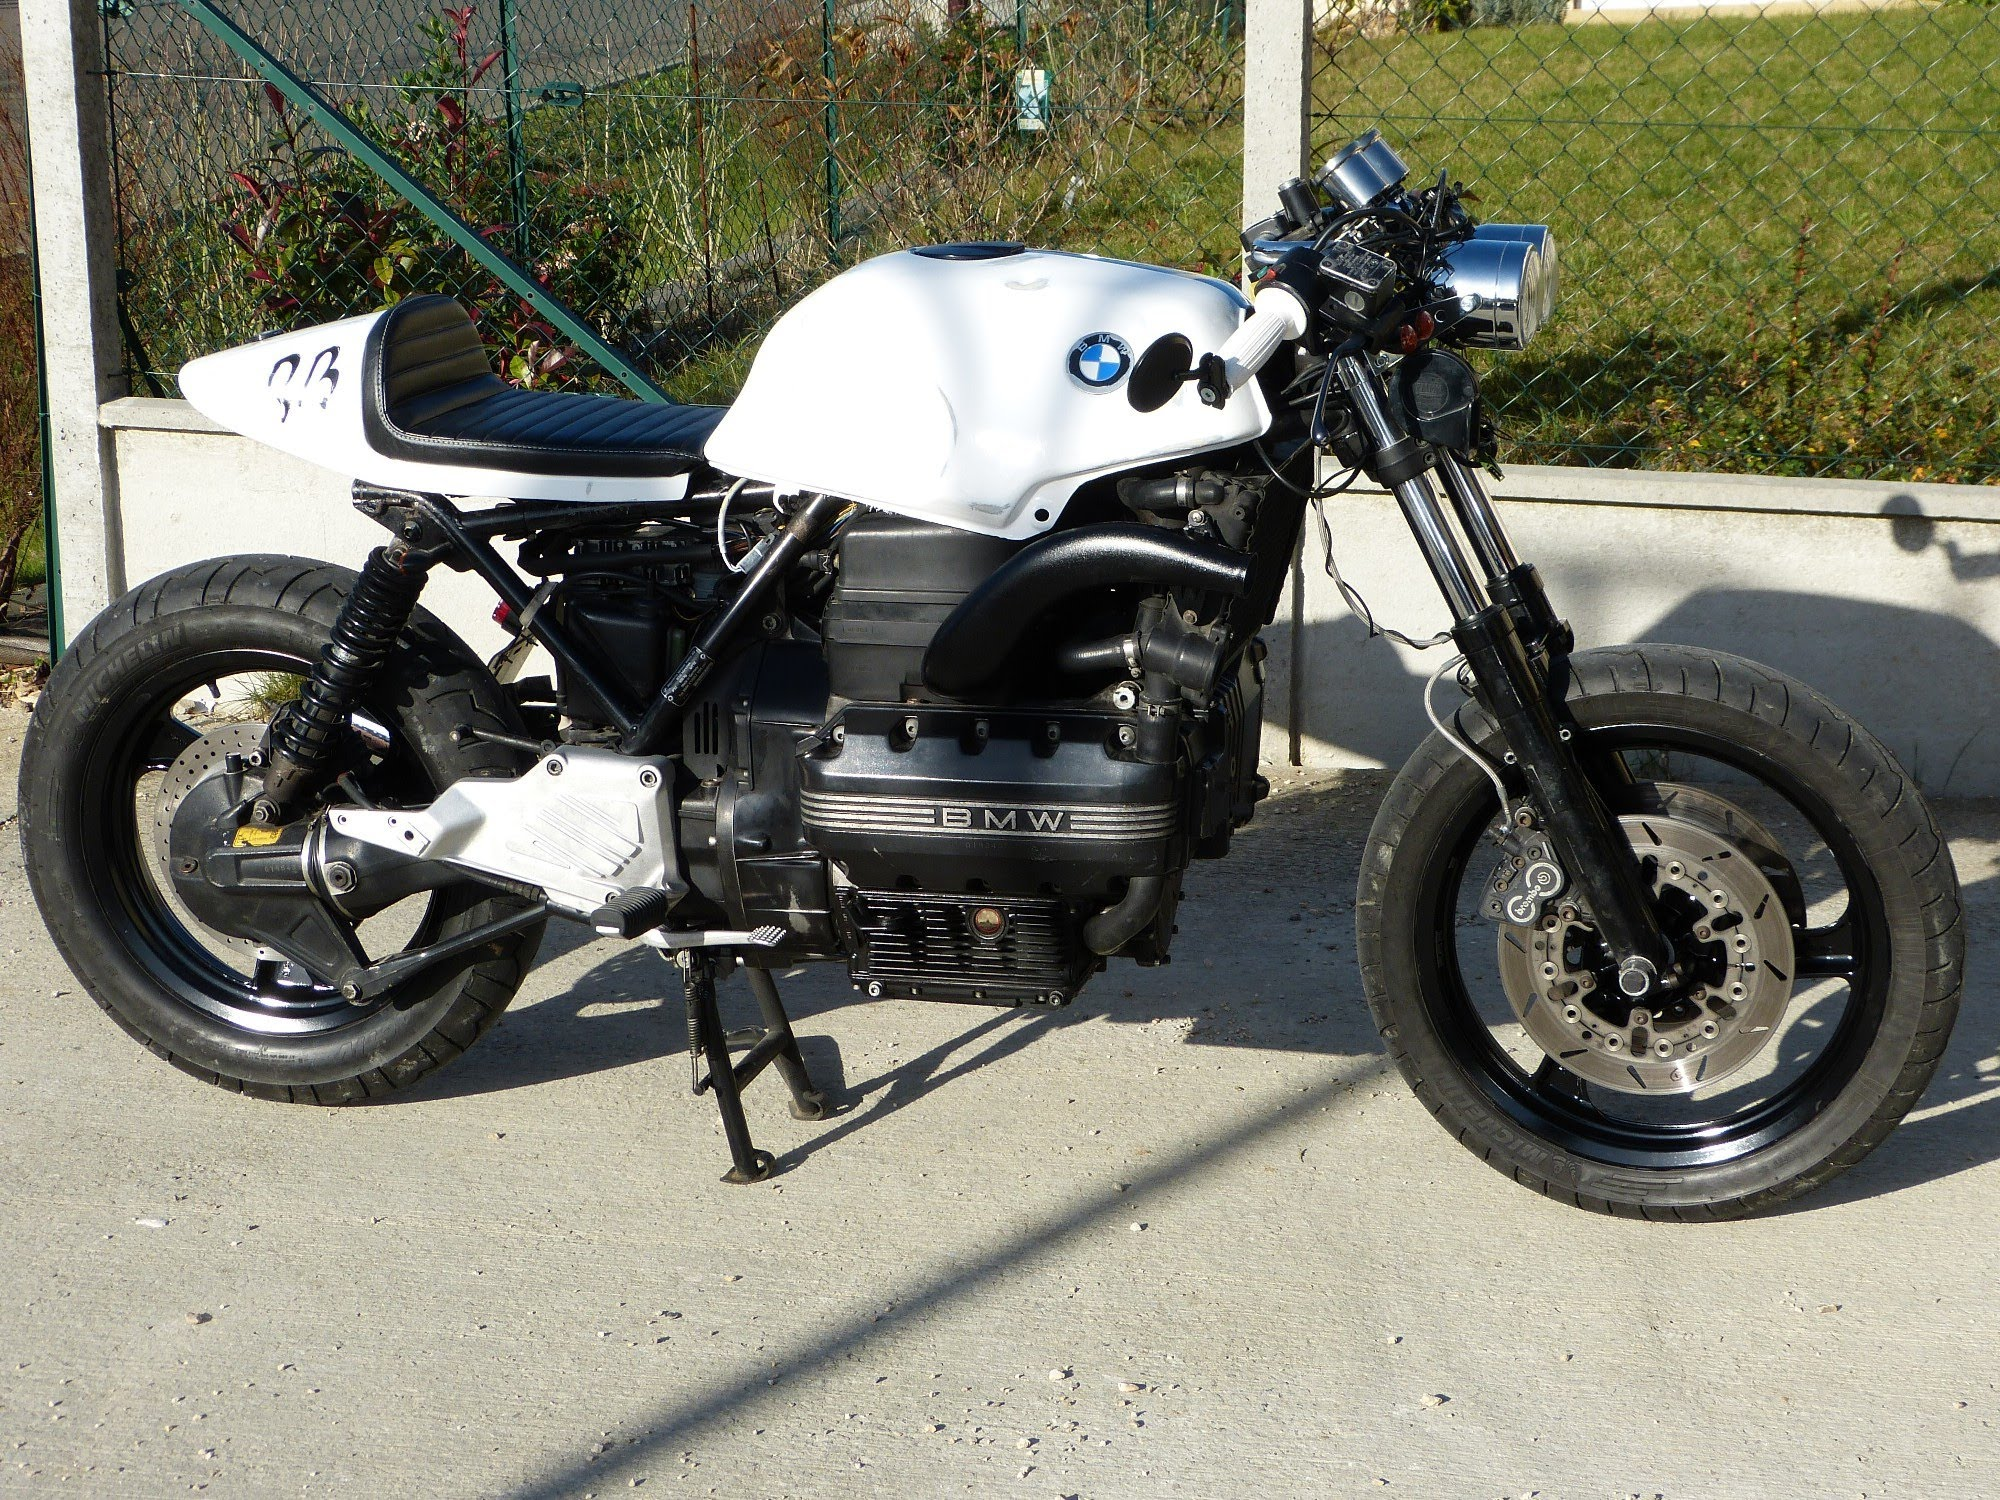 BMW K1100RS images #5419